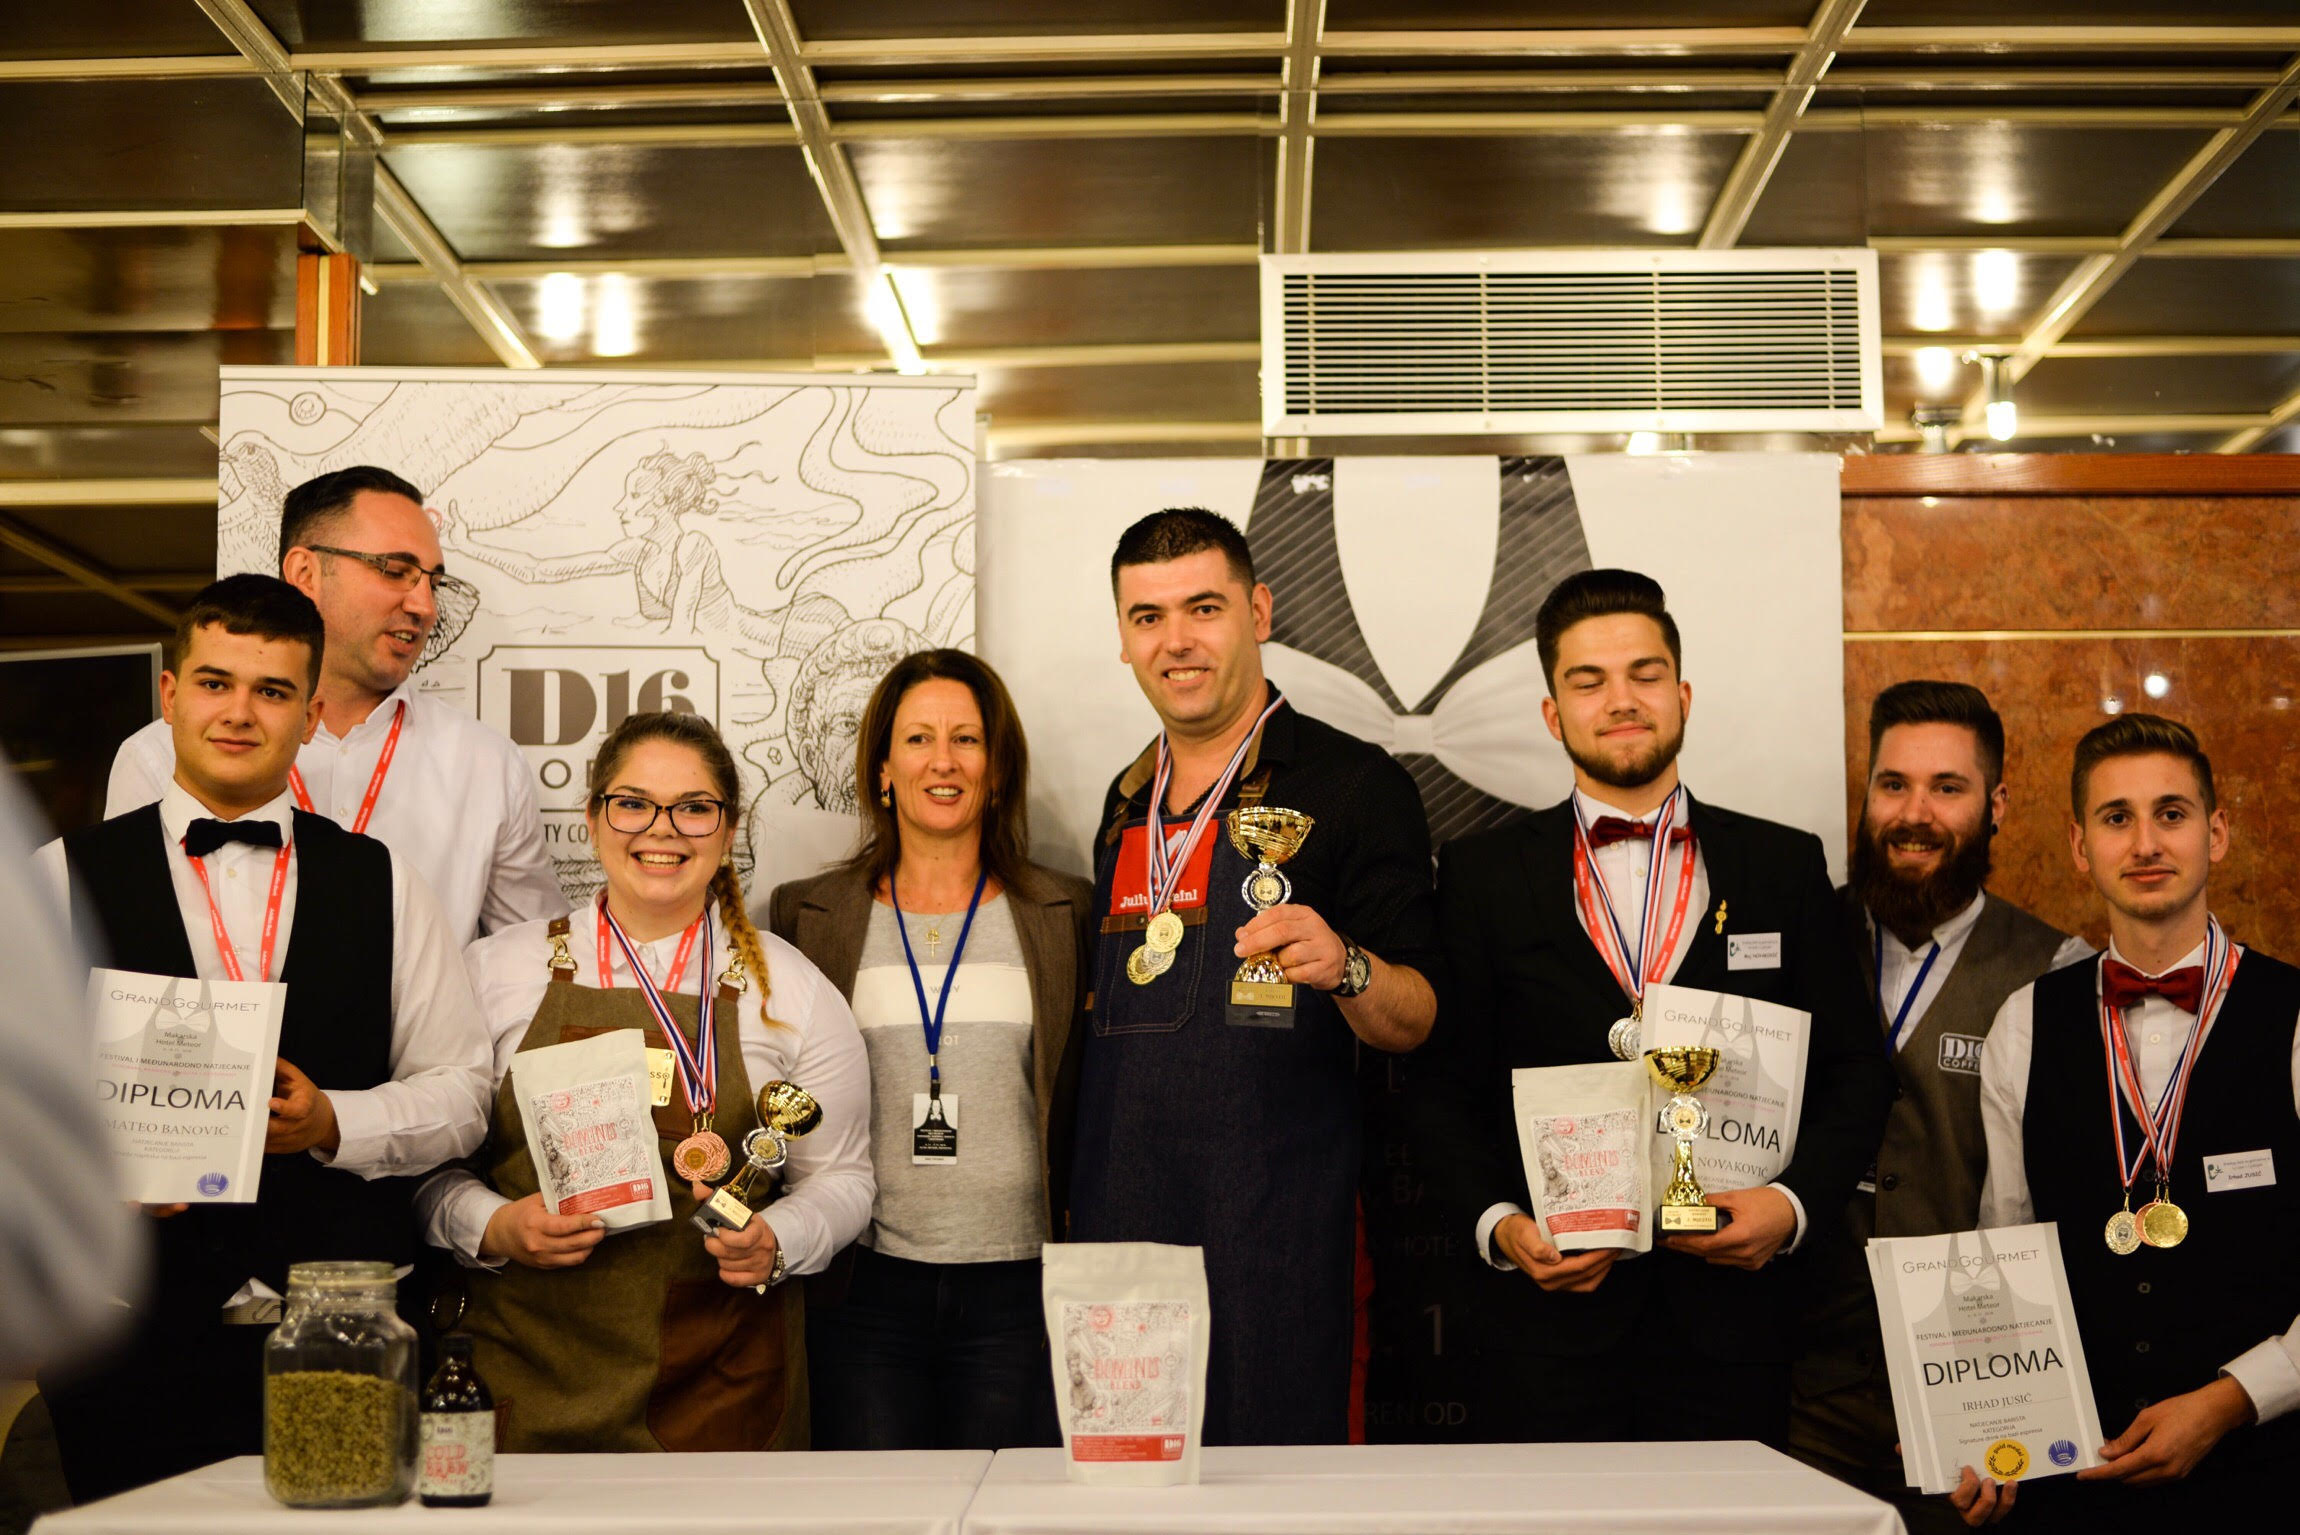 D16 Coffee as Specialty Coffee Sponsor at Grand Gourmet 2018